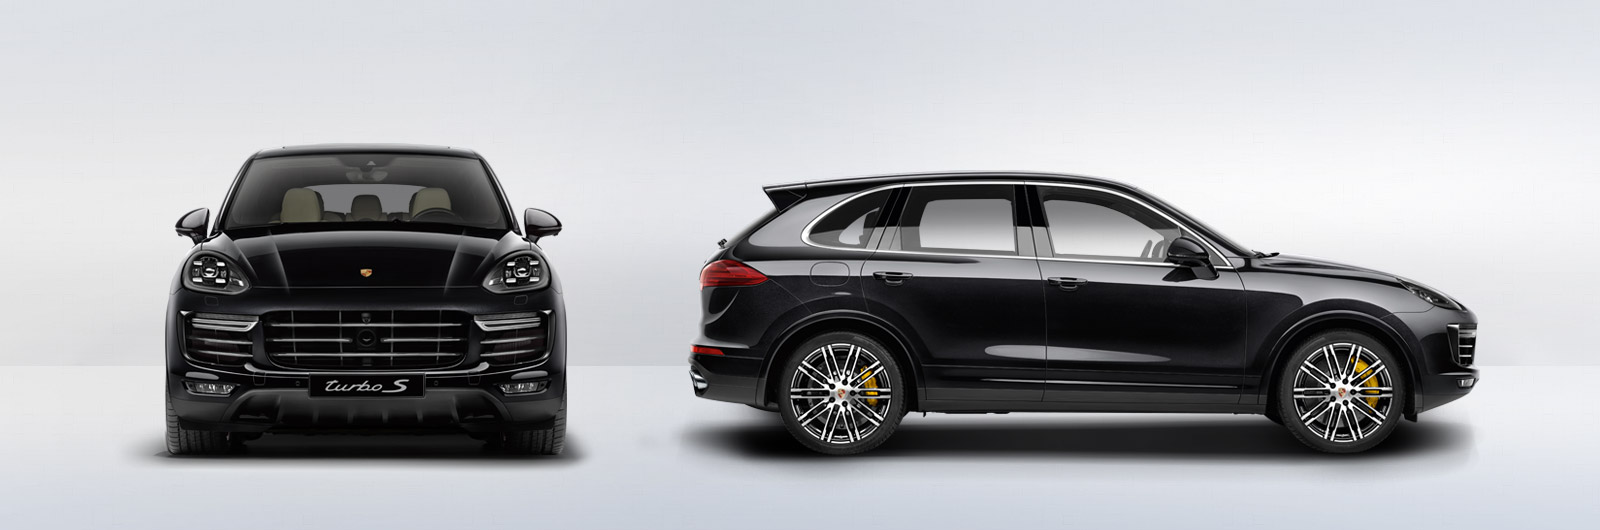 Porsche Cayenne Turbo S  Technical Specs  Porsche Cars North America